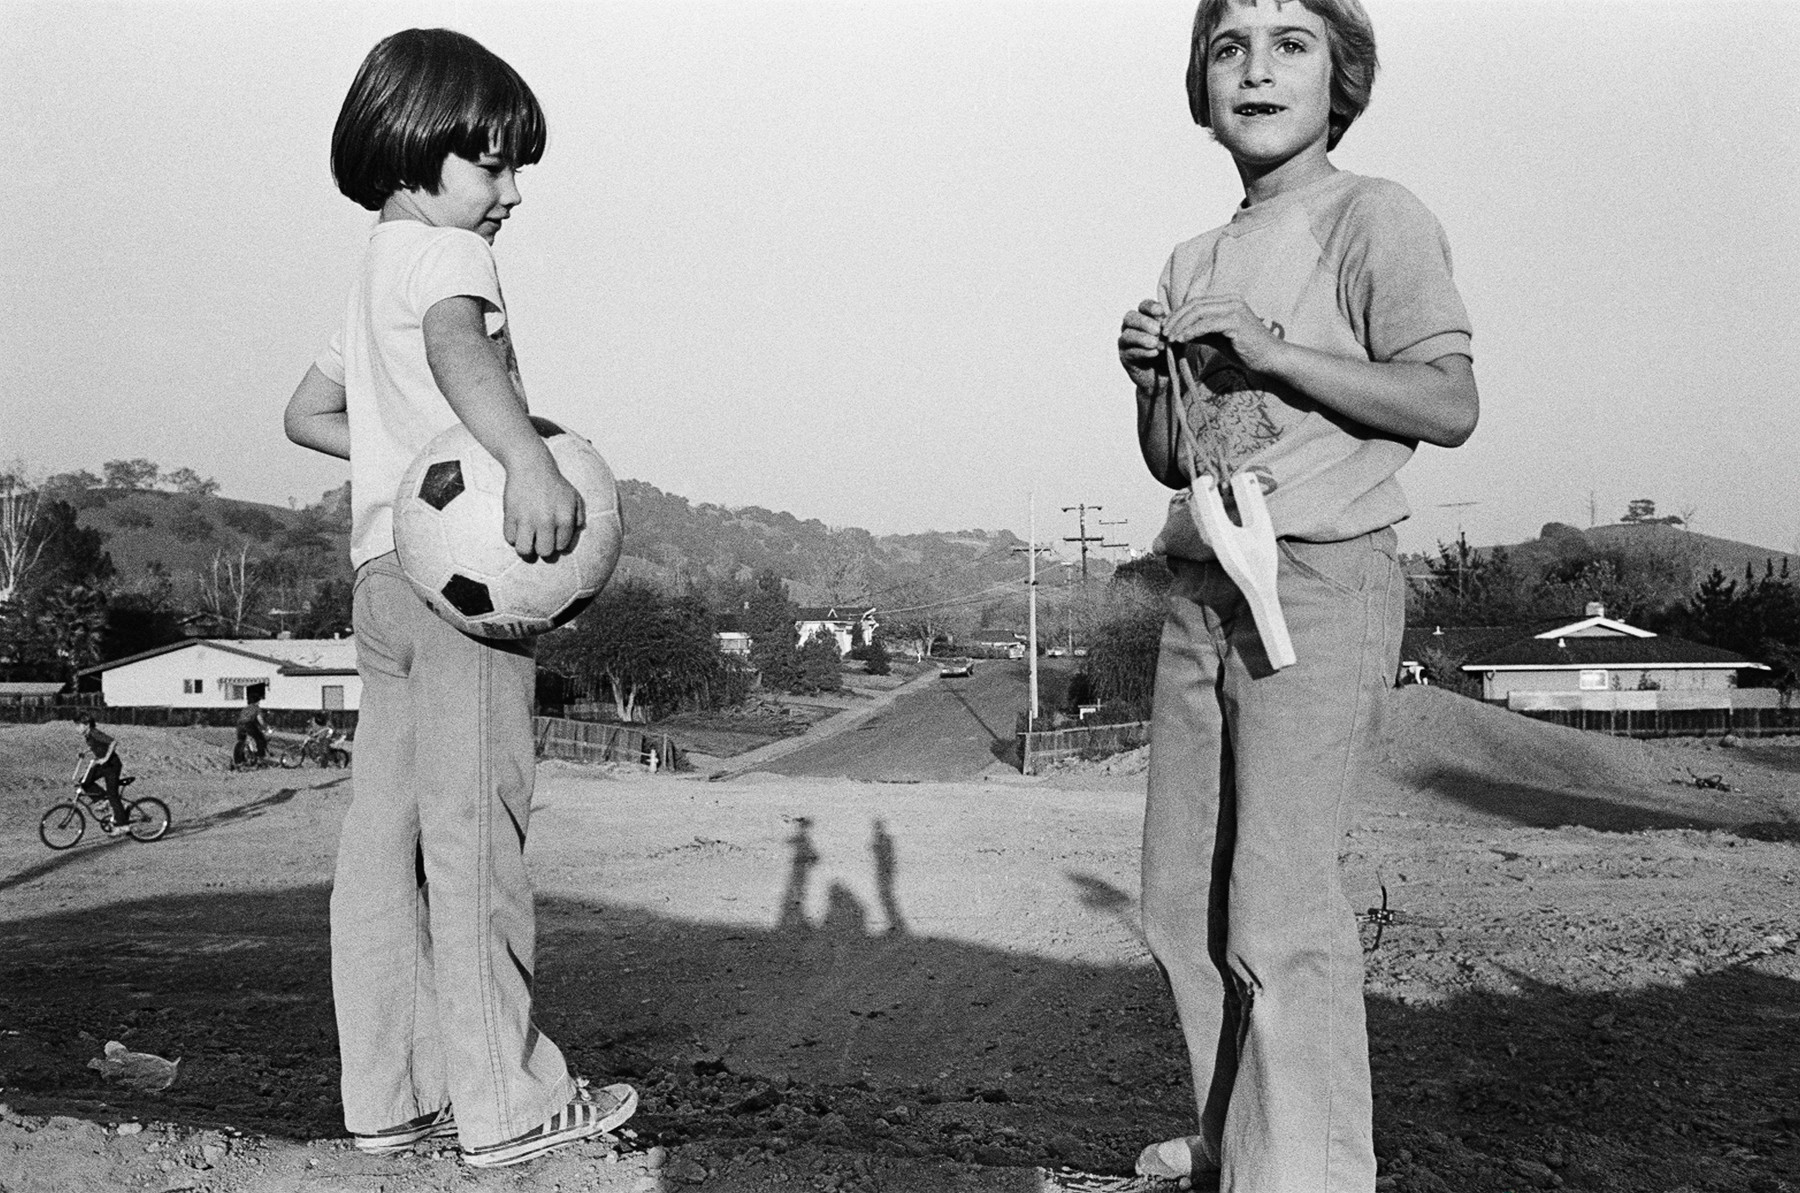 These photos of growing up in the Bay Area suburbs tell a story of